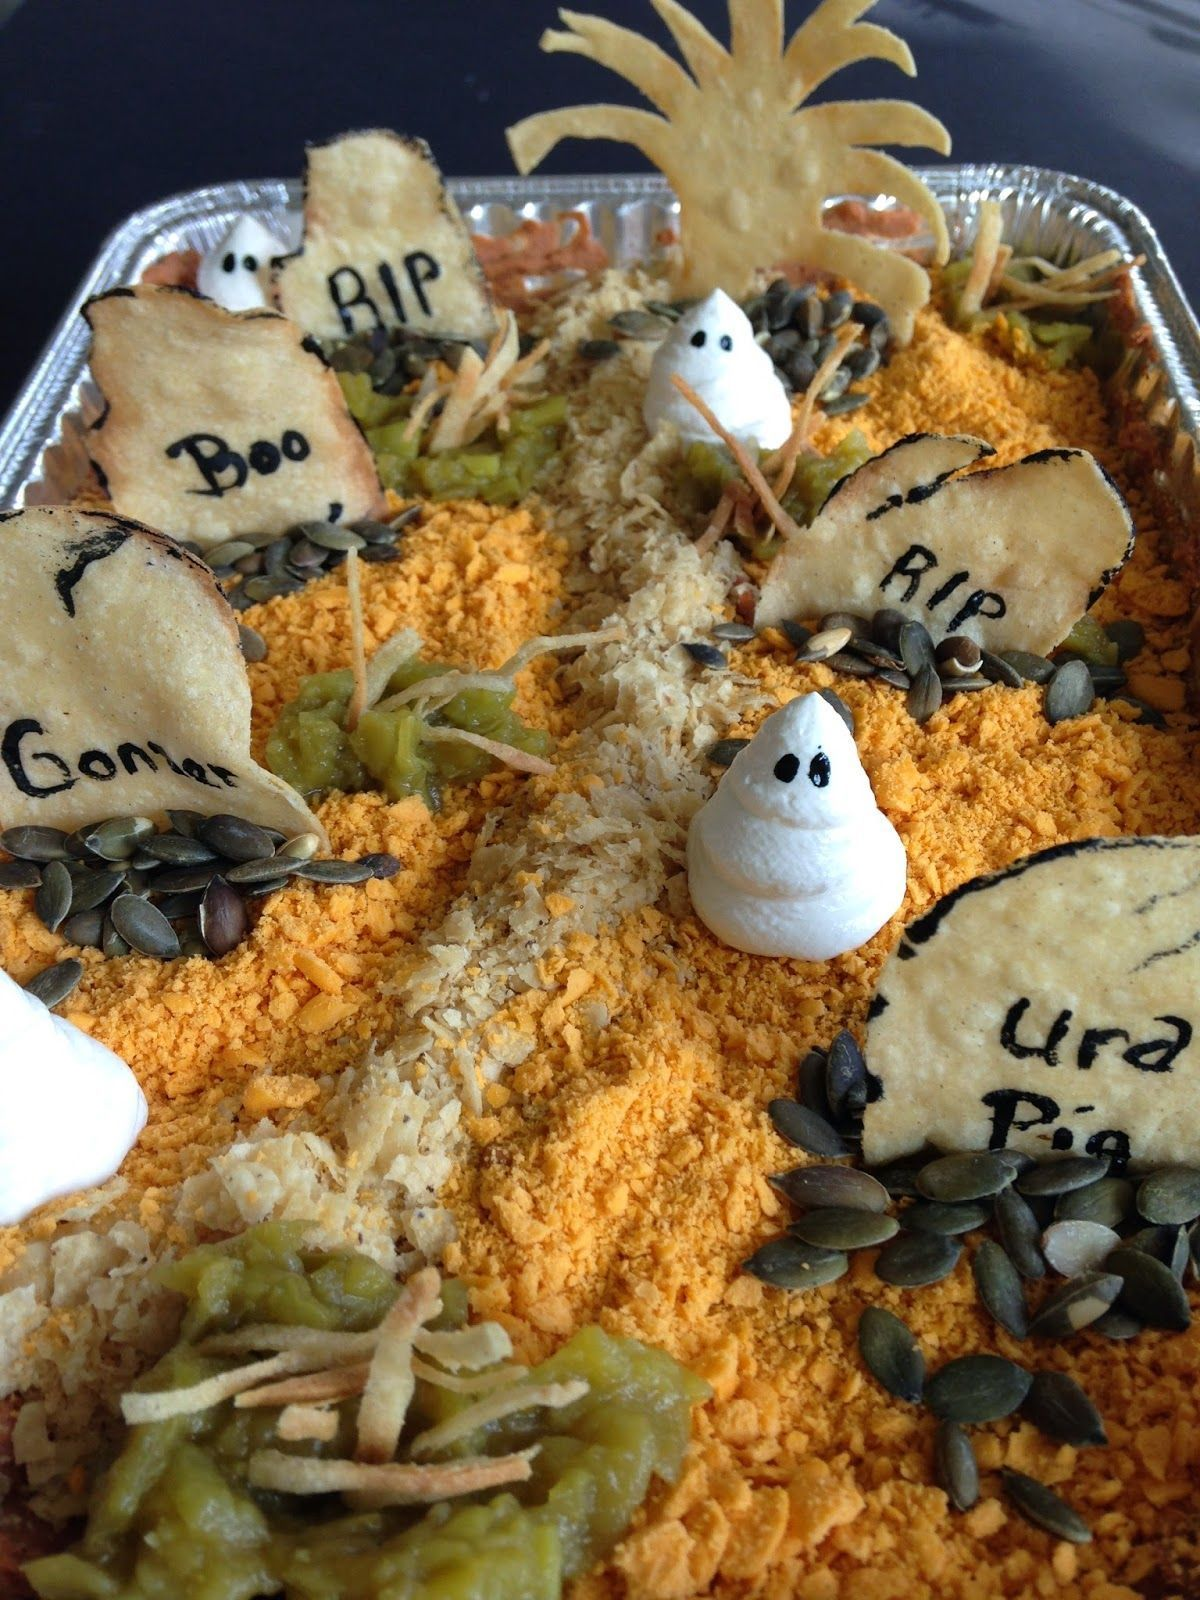 Zombie Apocalypse Tablescape and Party #zombieapocalypseparty Zombie Apocalypse Tablescape and Party #zombieapocalypseparty Zombie Apocalypse Tablescape and Party #zombieapocalypseparty Zombie Apocalypse Tablescape and Party #zombieapocalypseparty